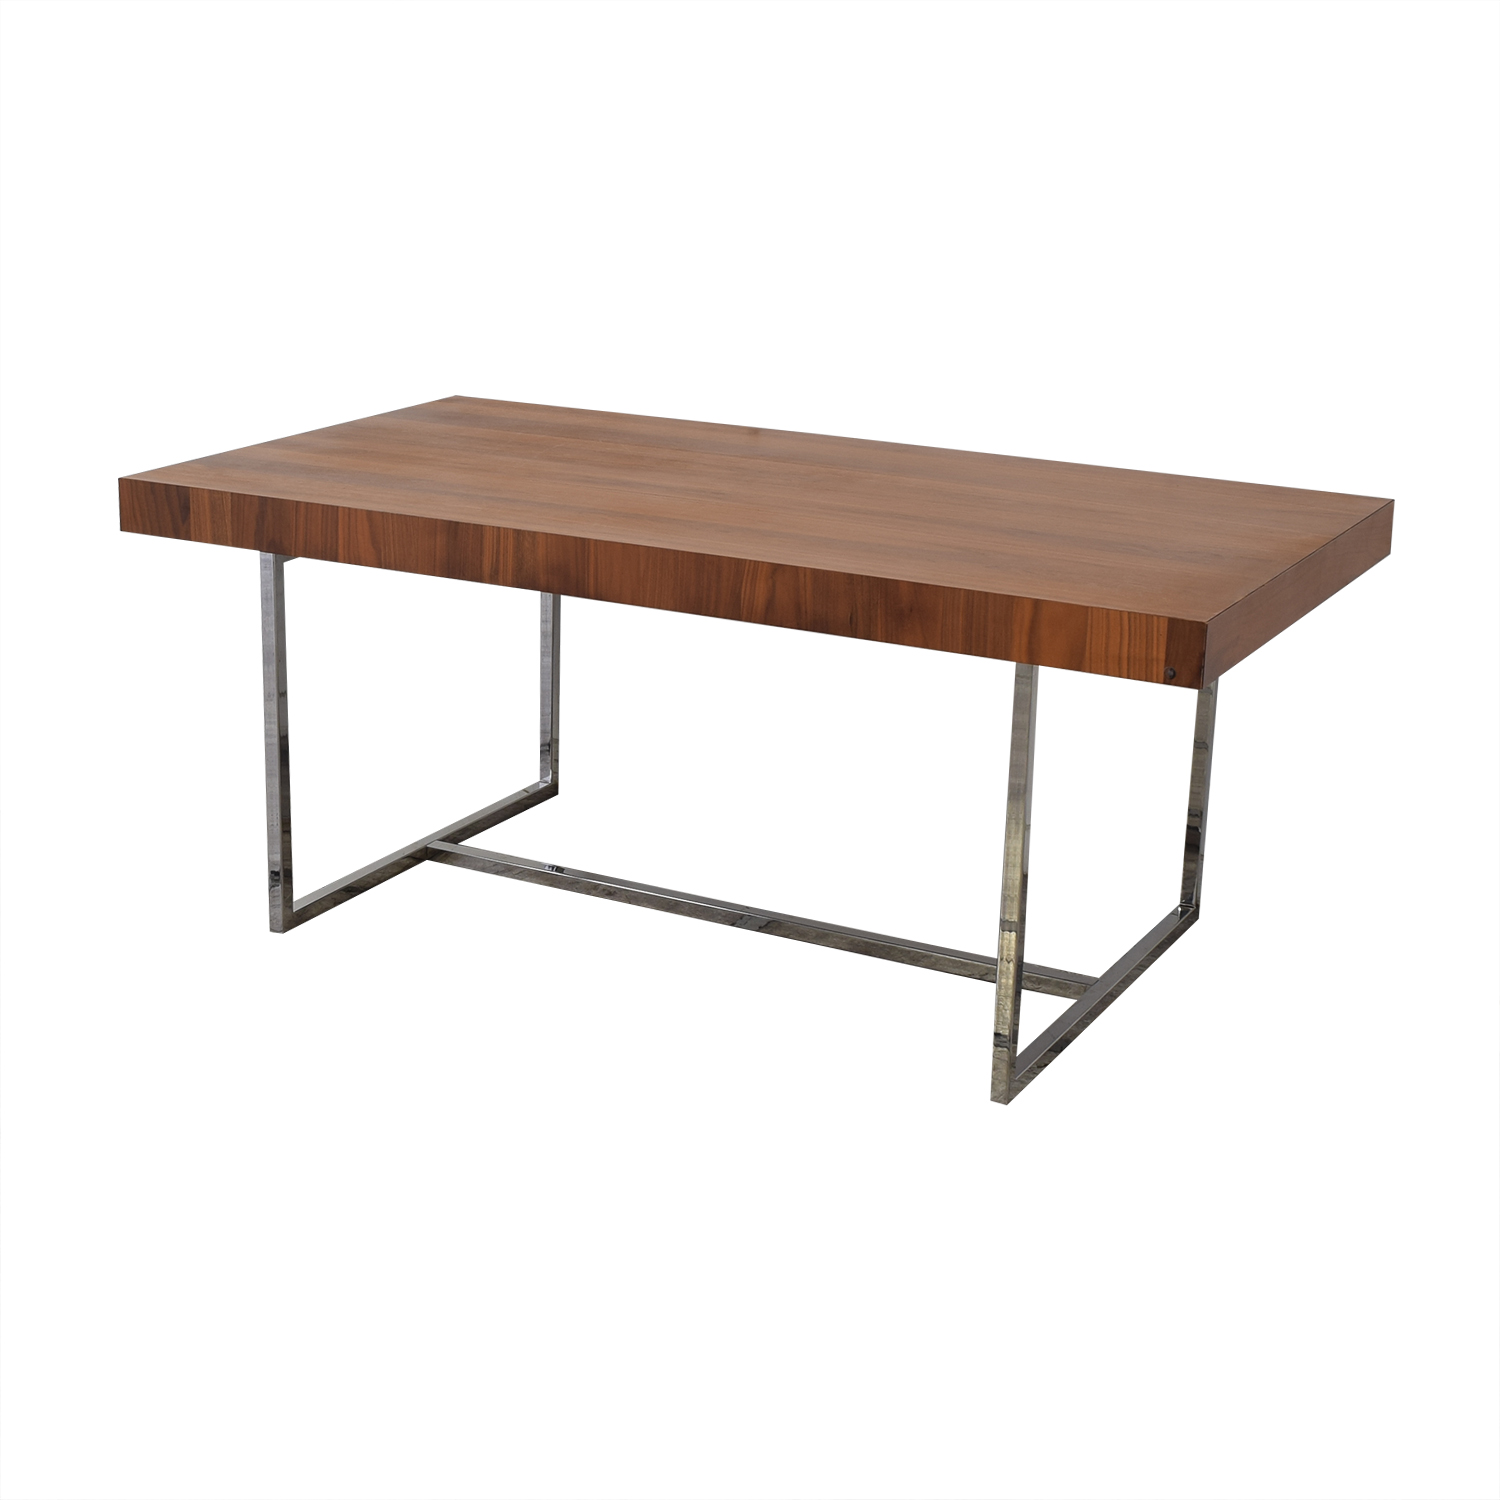 shop Calligaris Calligaris Extendable Dining Table online